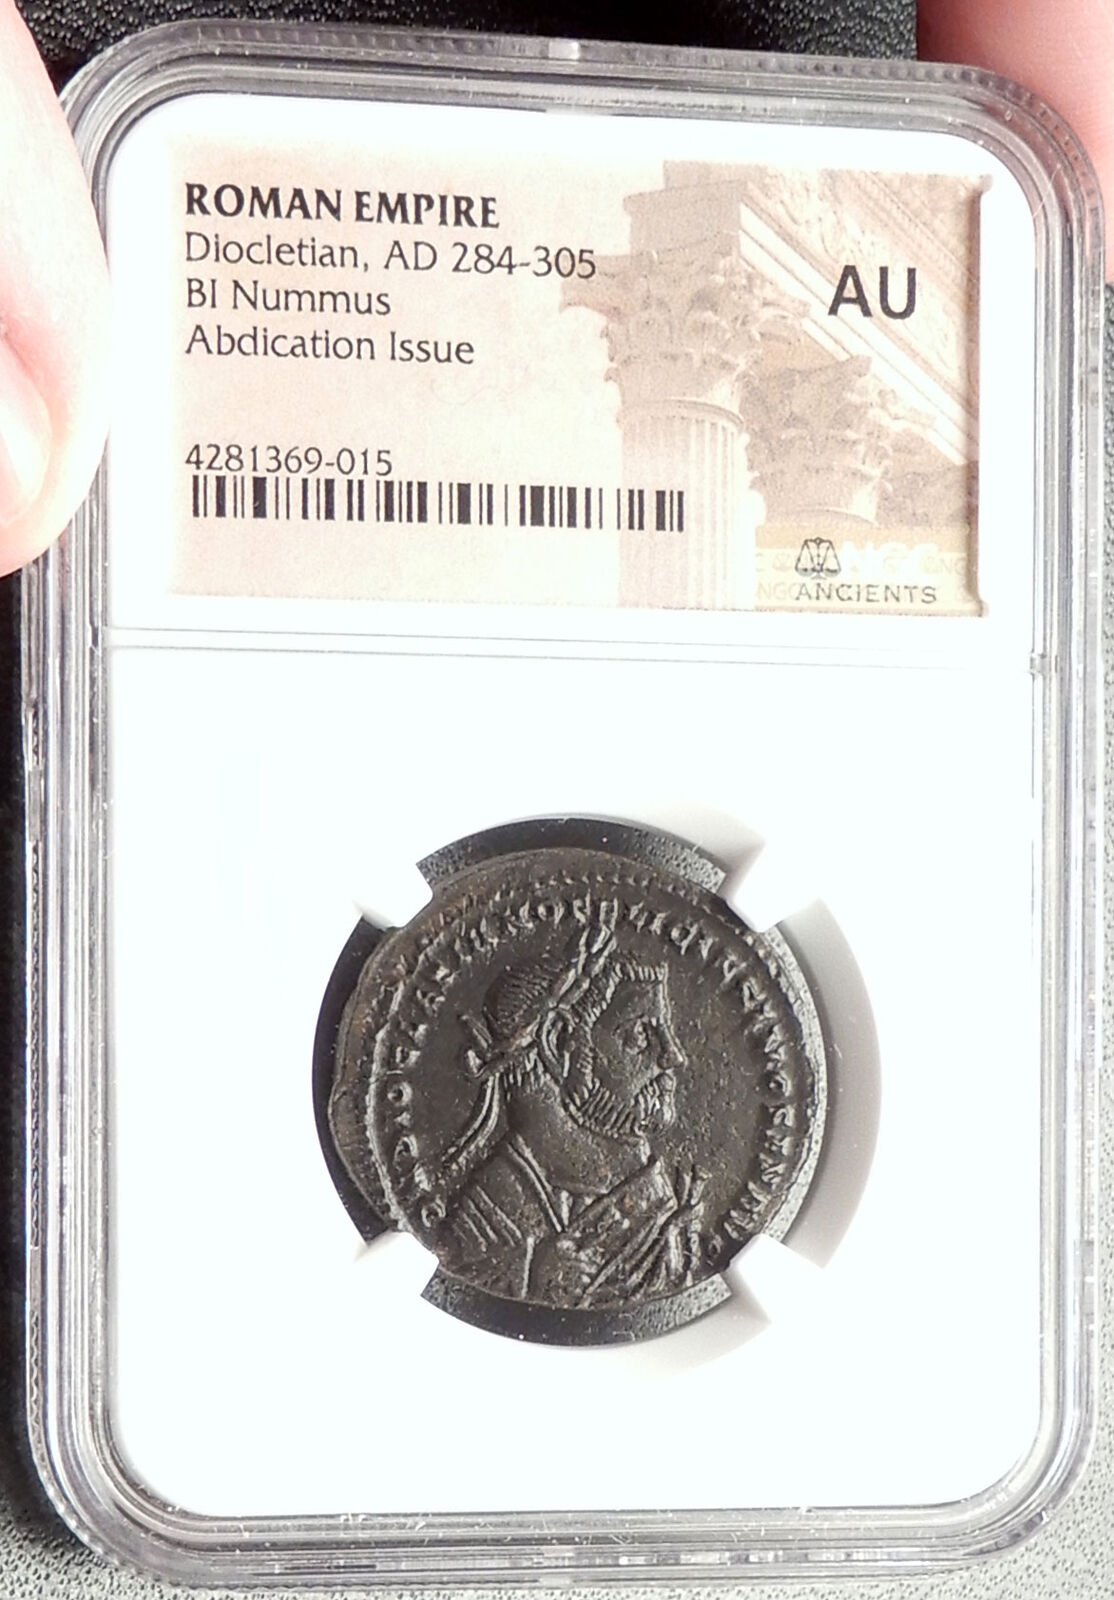 DIOCLETIAN Abdication Issue 305AD Ancient Roman Coin of London NGC AU i67623 3